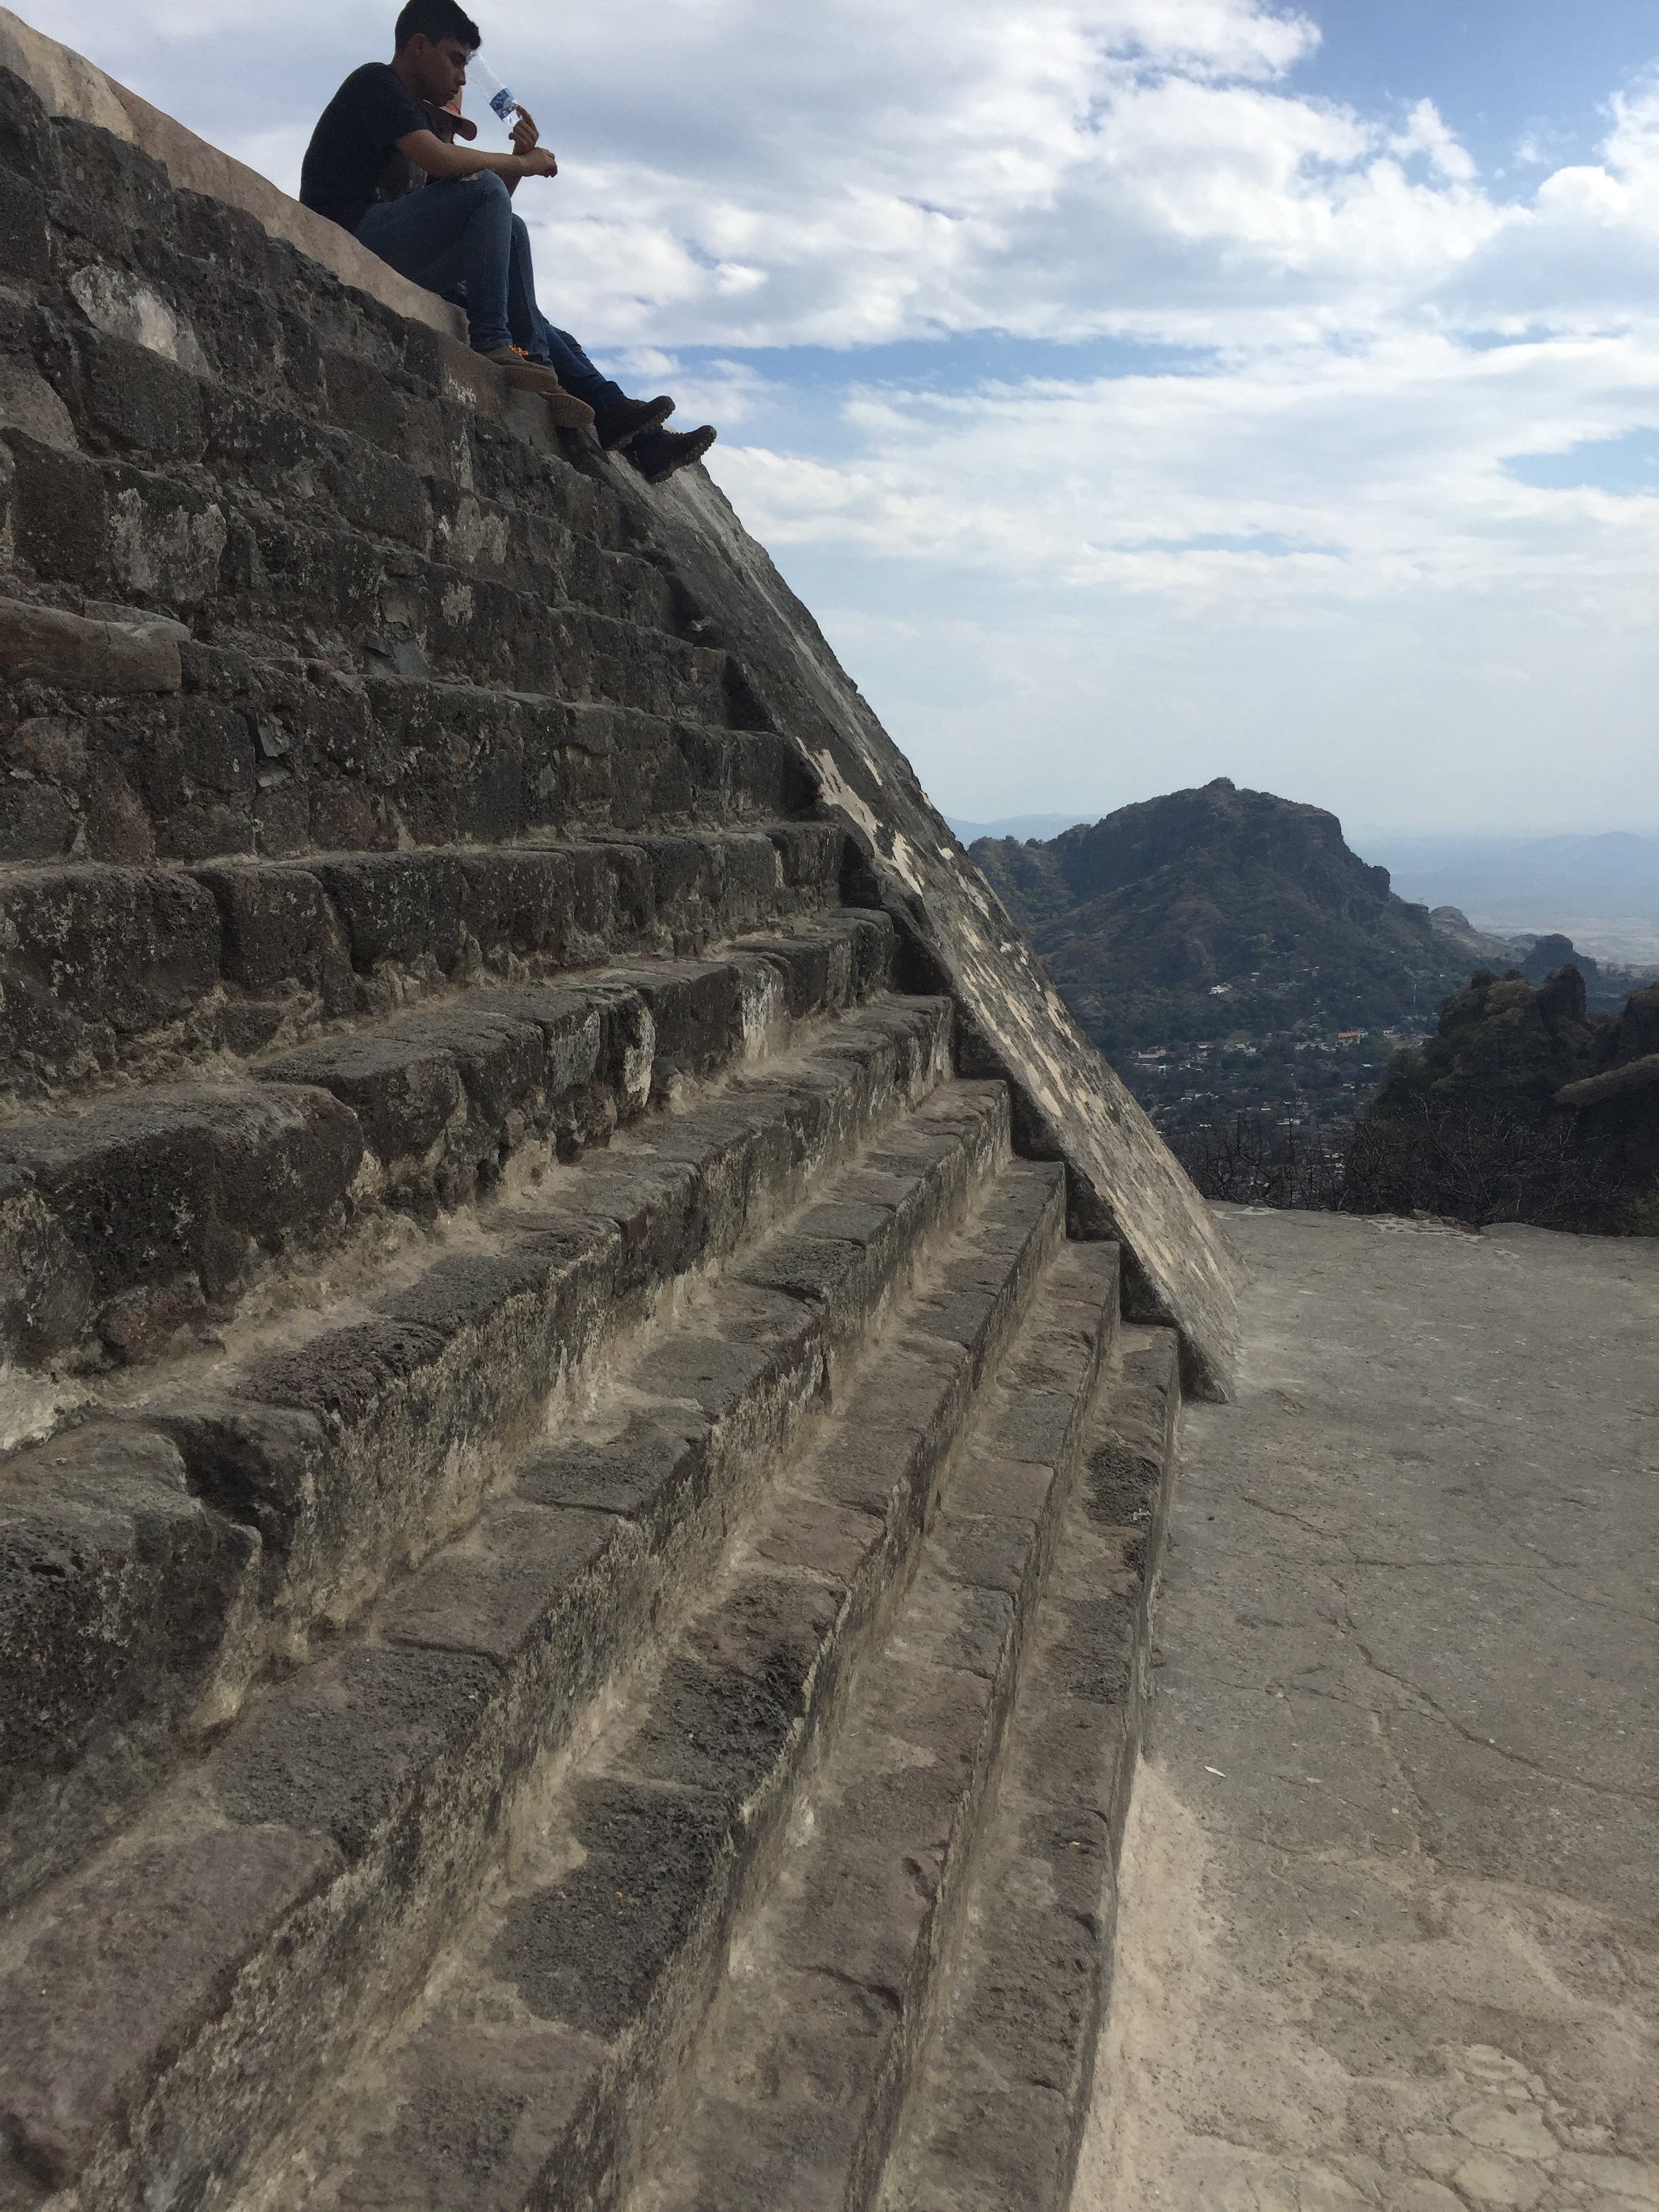 Two Mexicans sit on a pyramid in Tepoztlan.